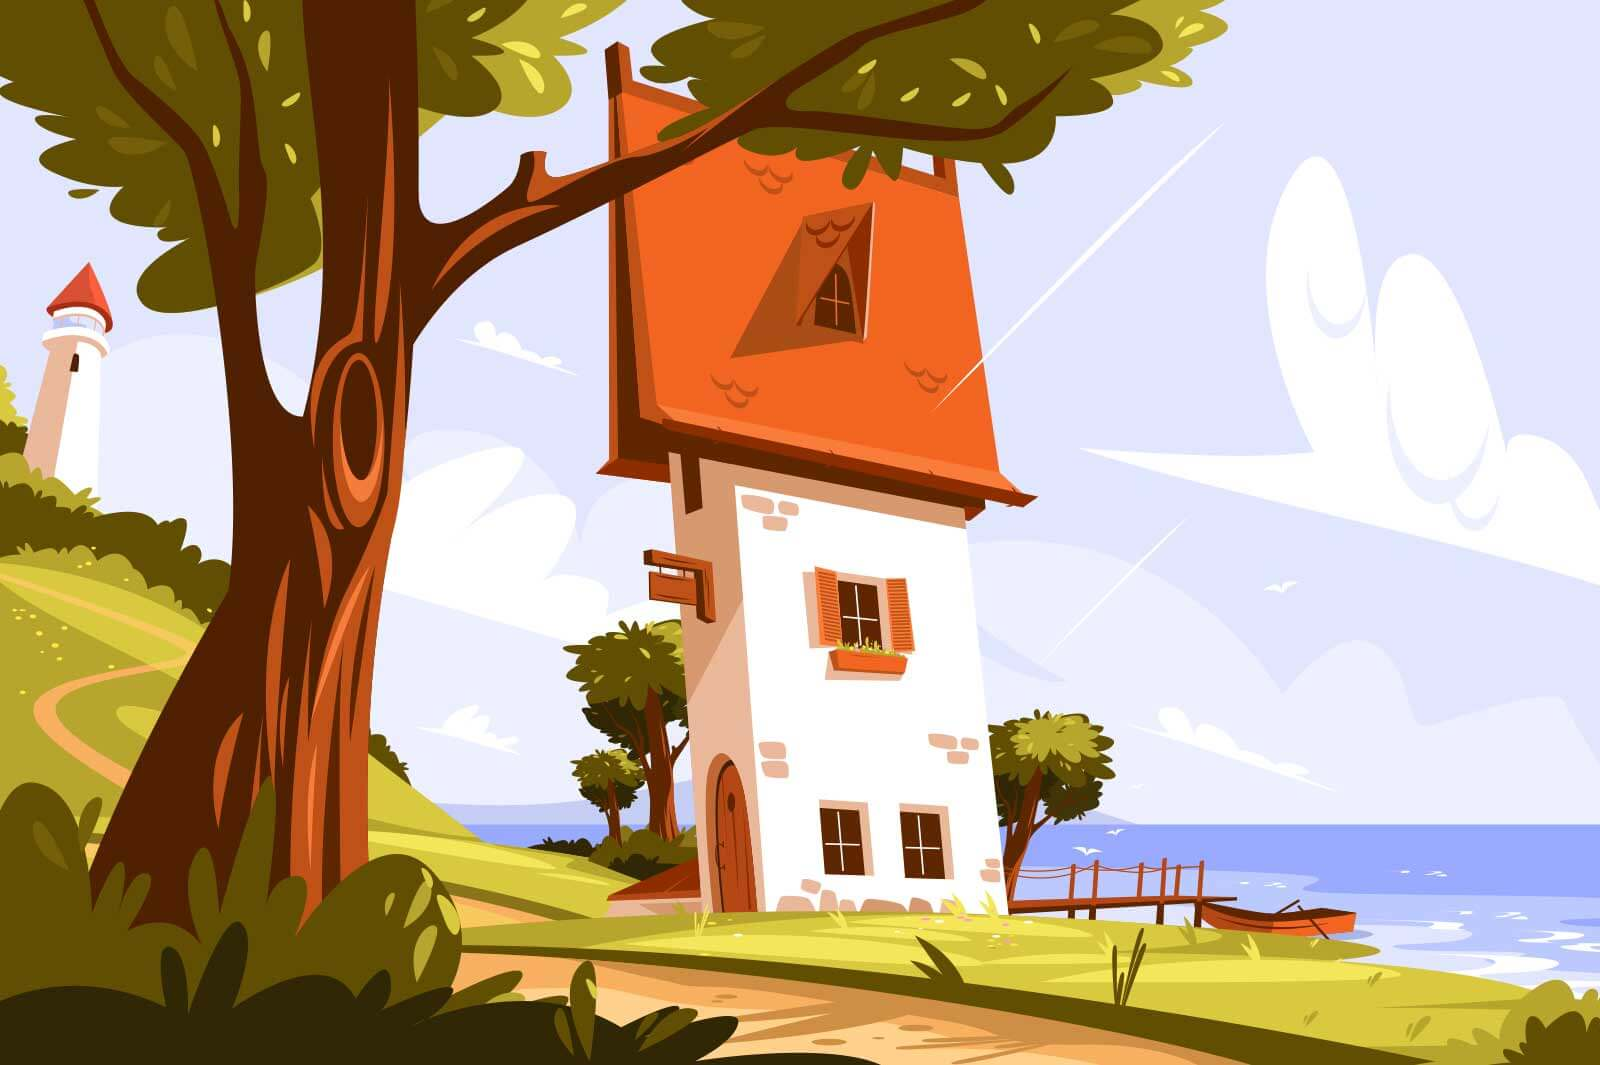 Lighthouse standing on land vector illustration. Signal building on seaside flat style. Coastline landscape with beacon. Sea and lonely house. Hope symbol solitude and nature concept